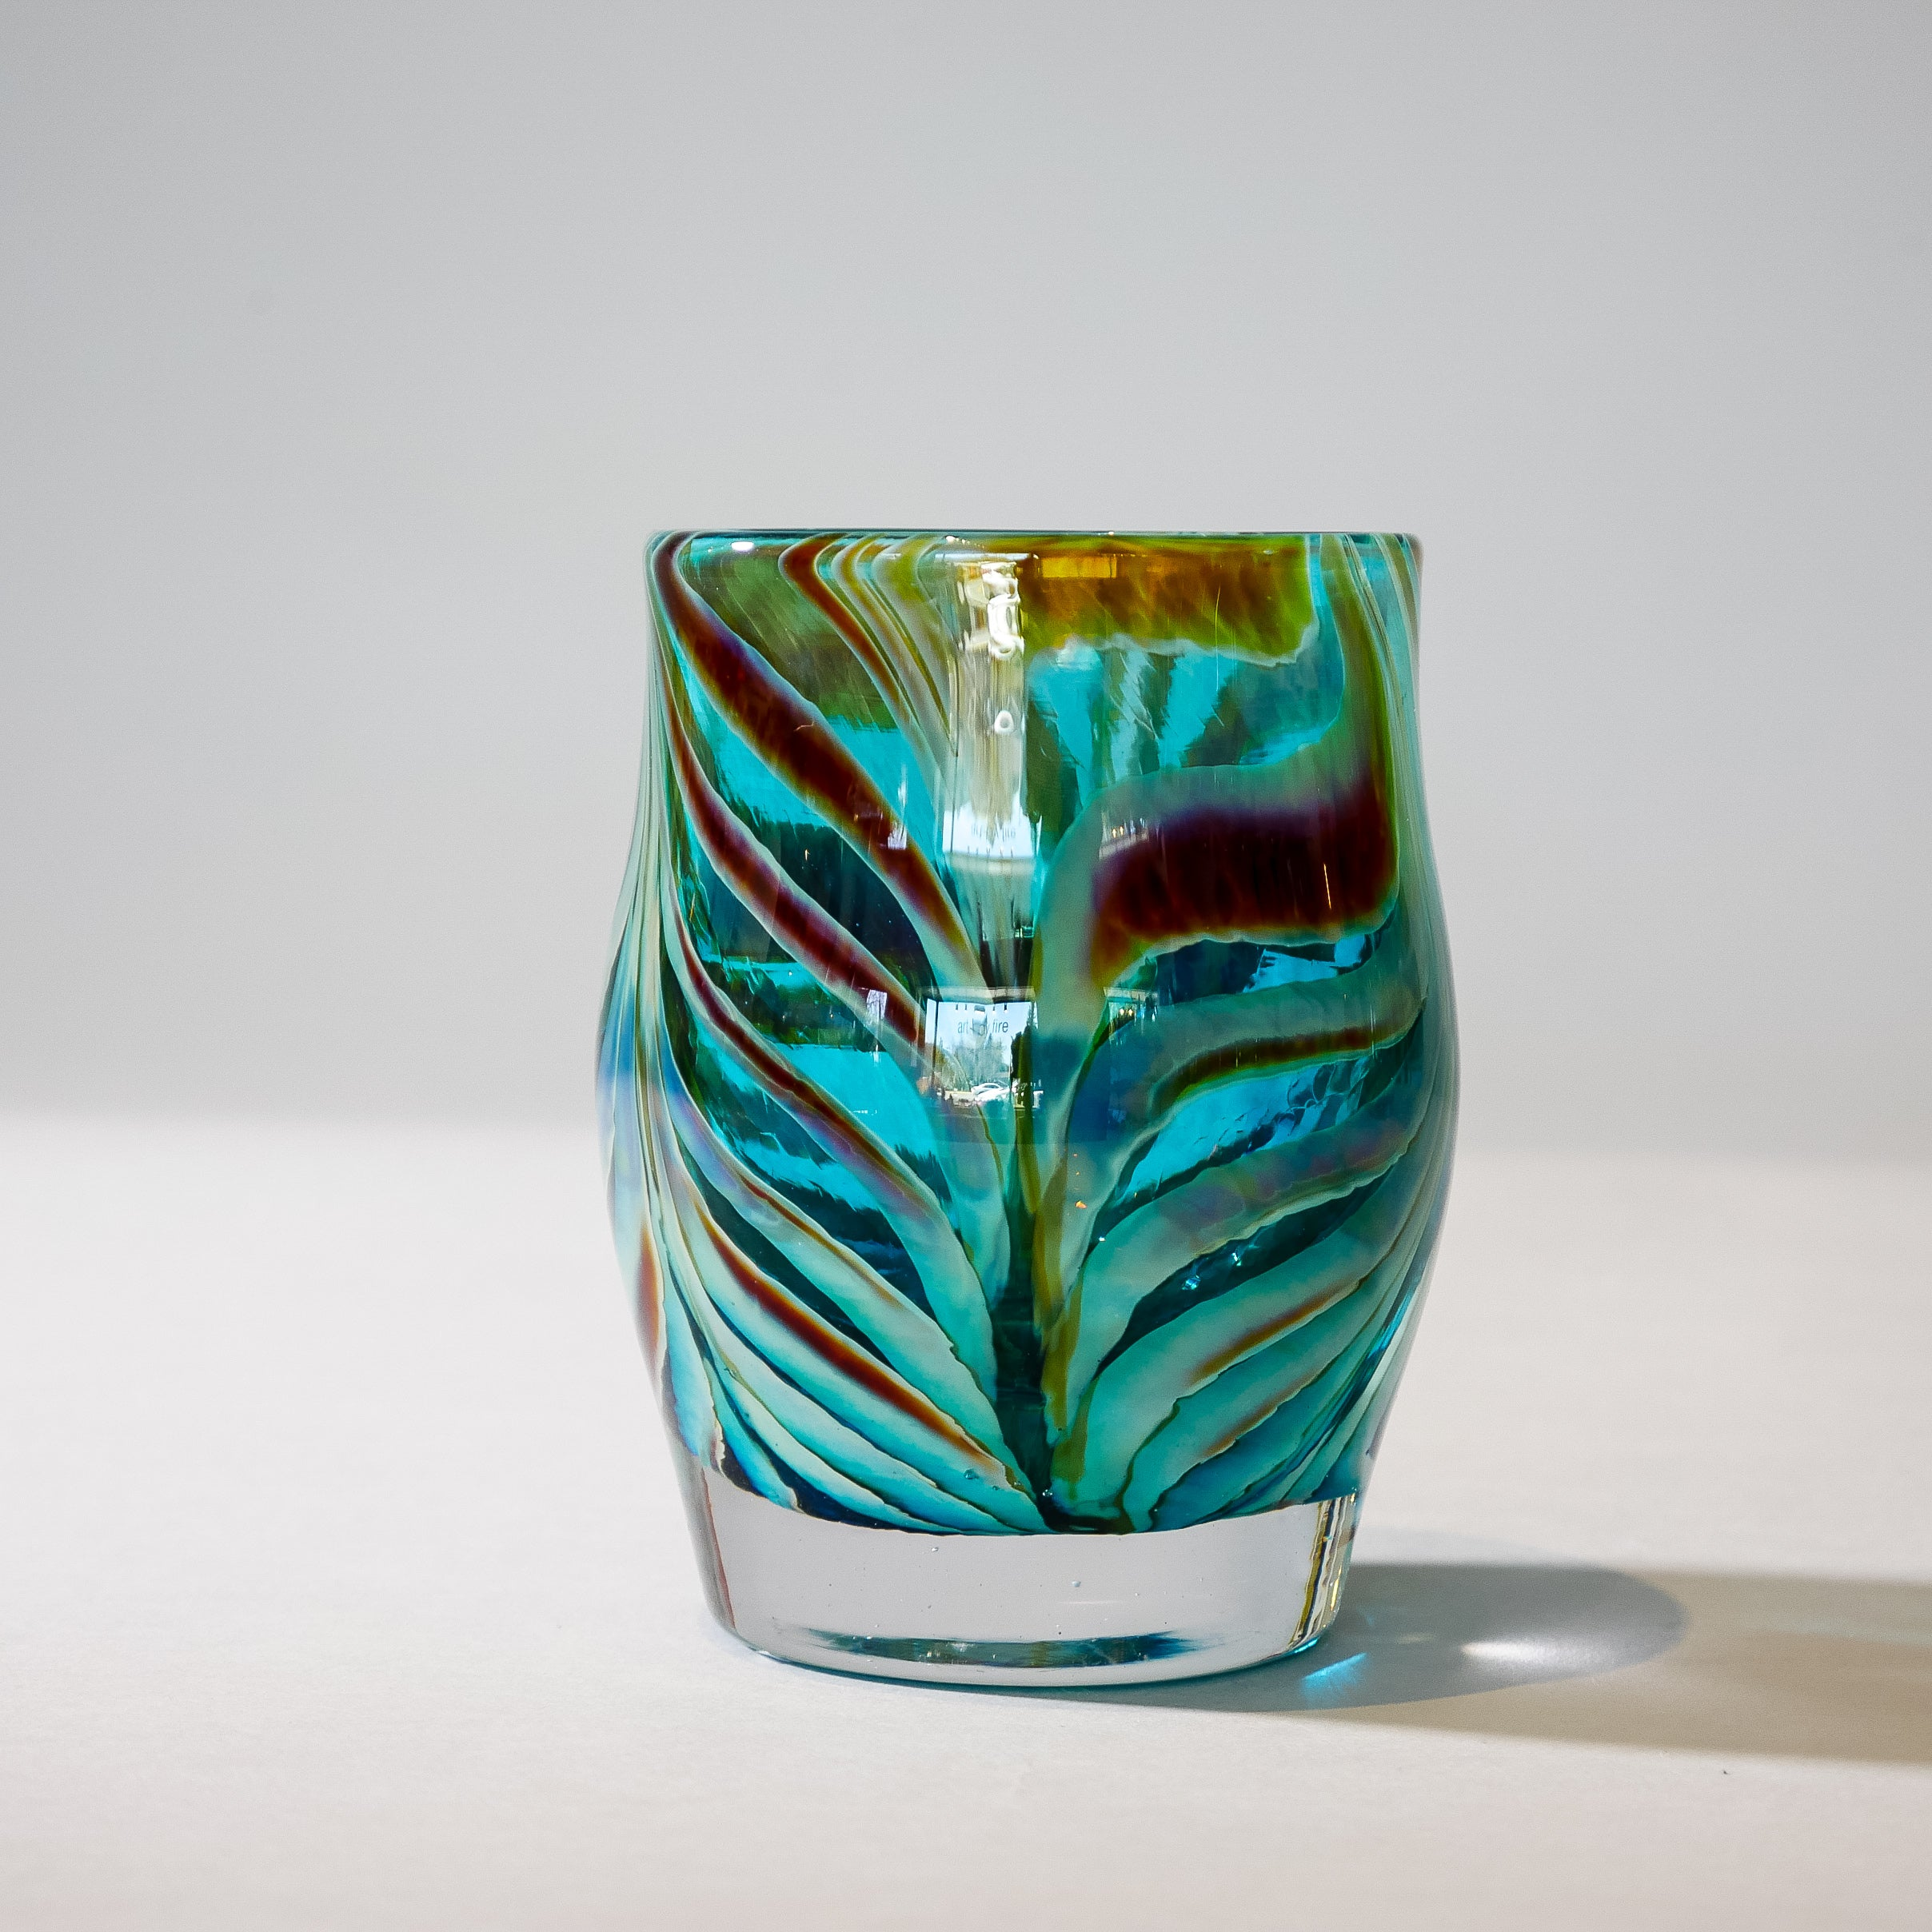 Small Blown Votive: Teal and Umber Feathered.